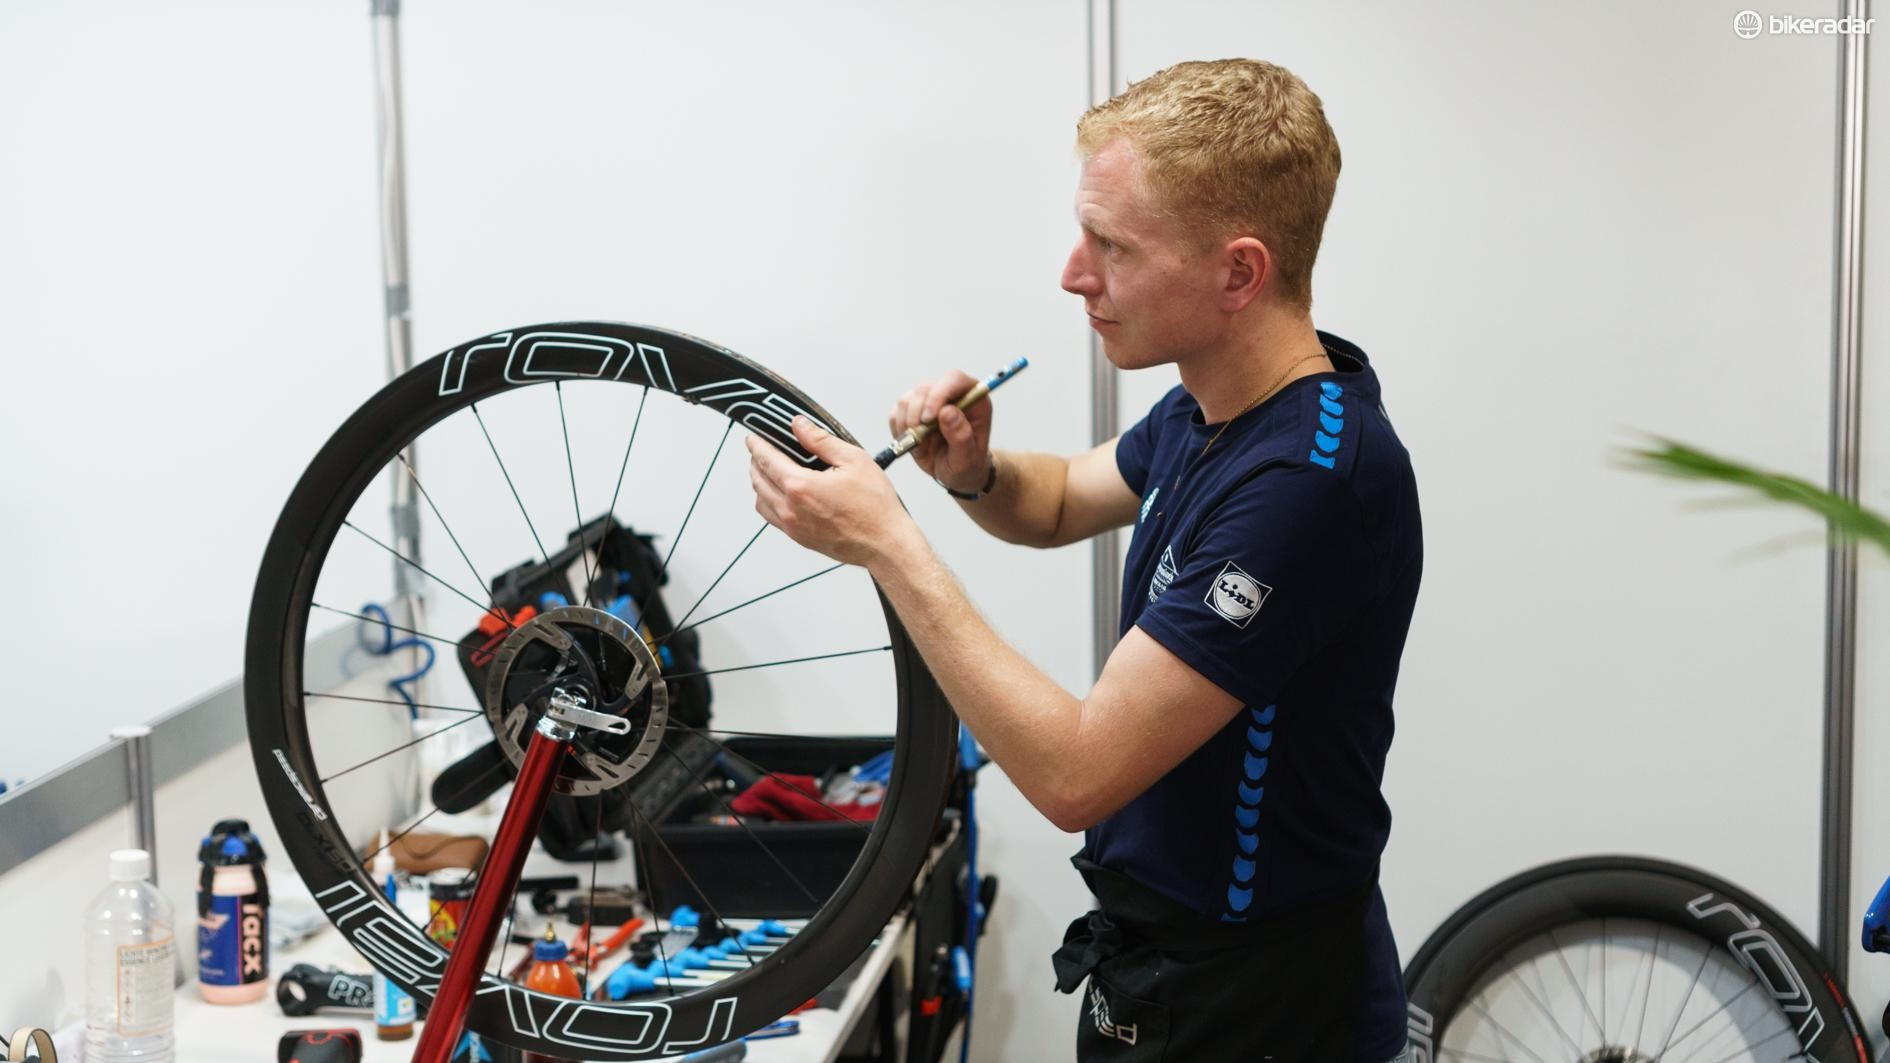 We've spent the last two weeks hassling the mechanics of the WorldTour to bring you this breakdown of the equipment used by teams in 2019